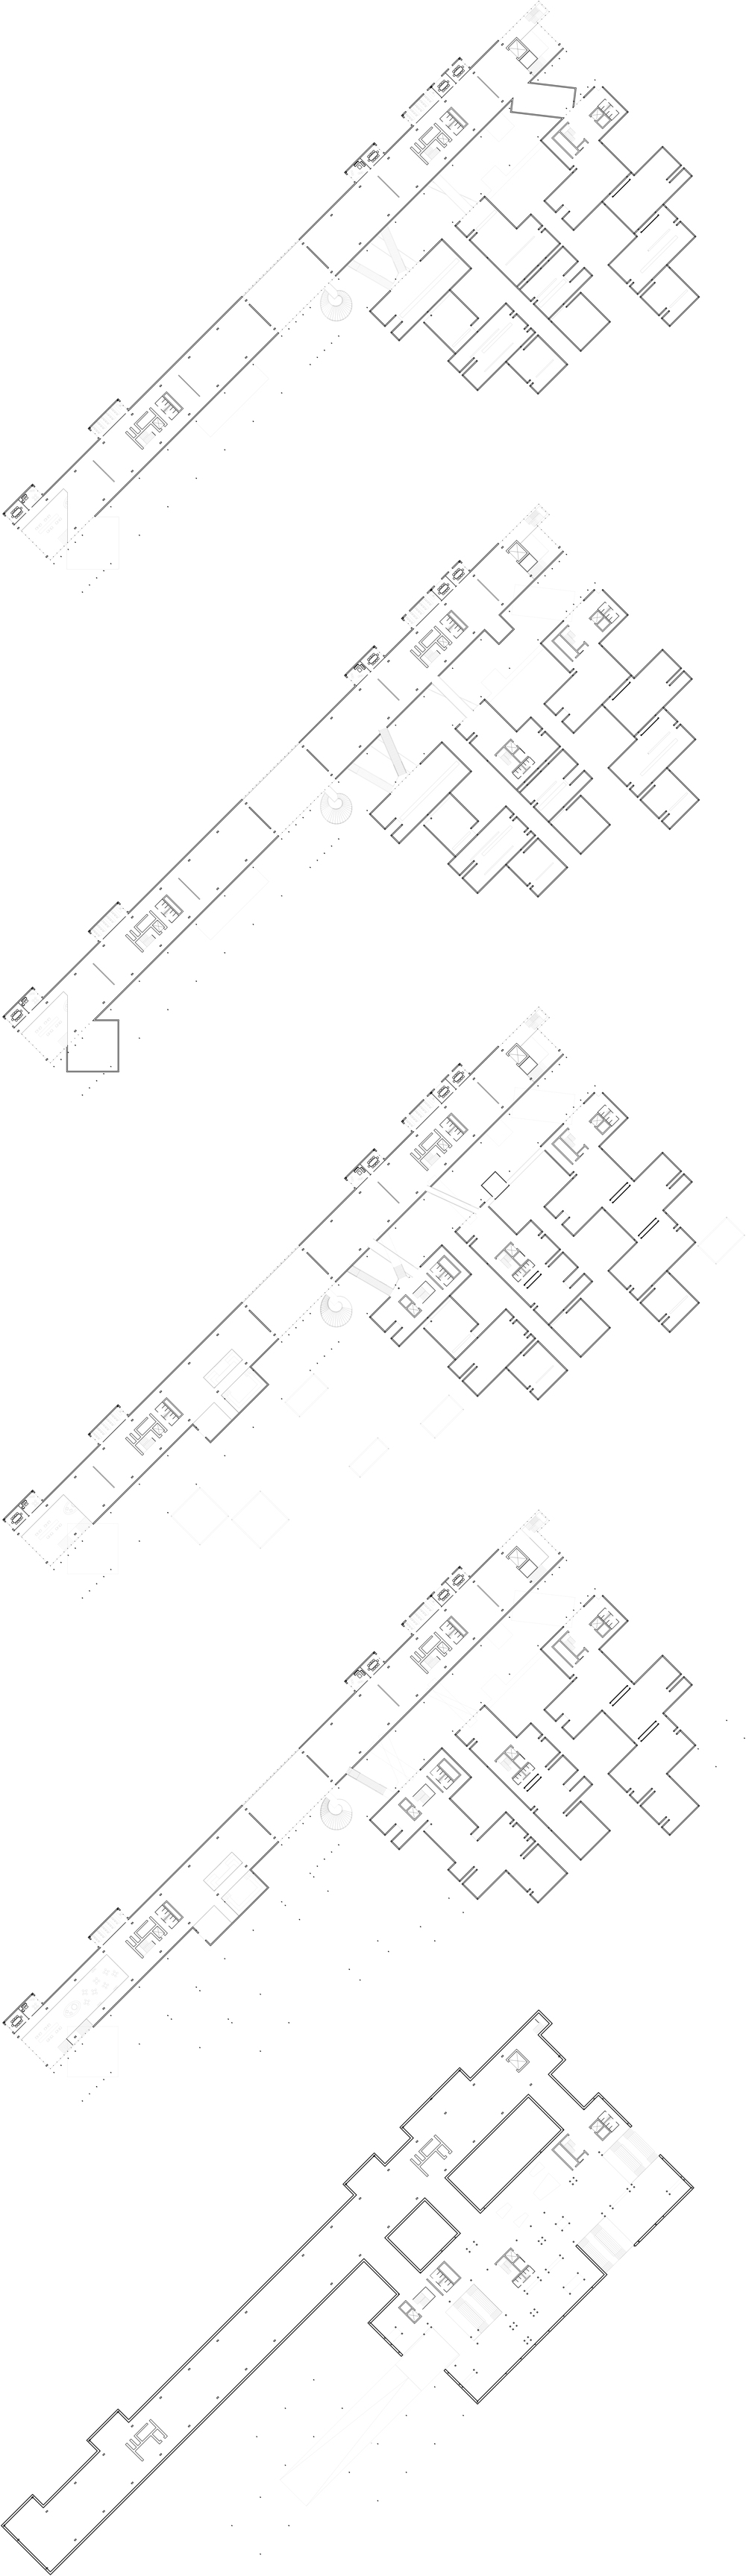 151213_Floorplans_compiled.jpg